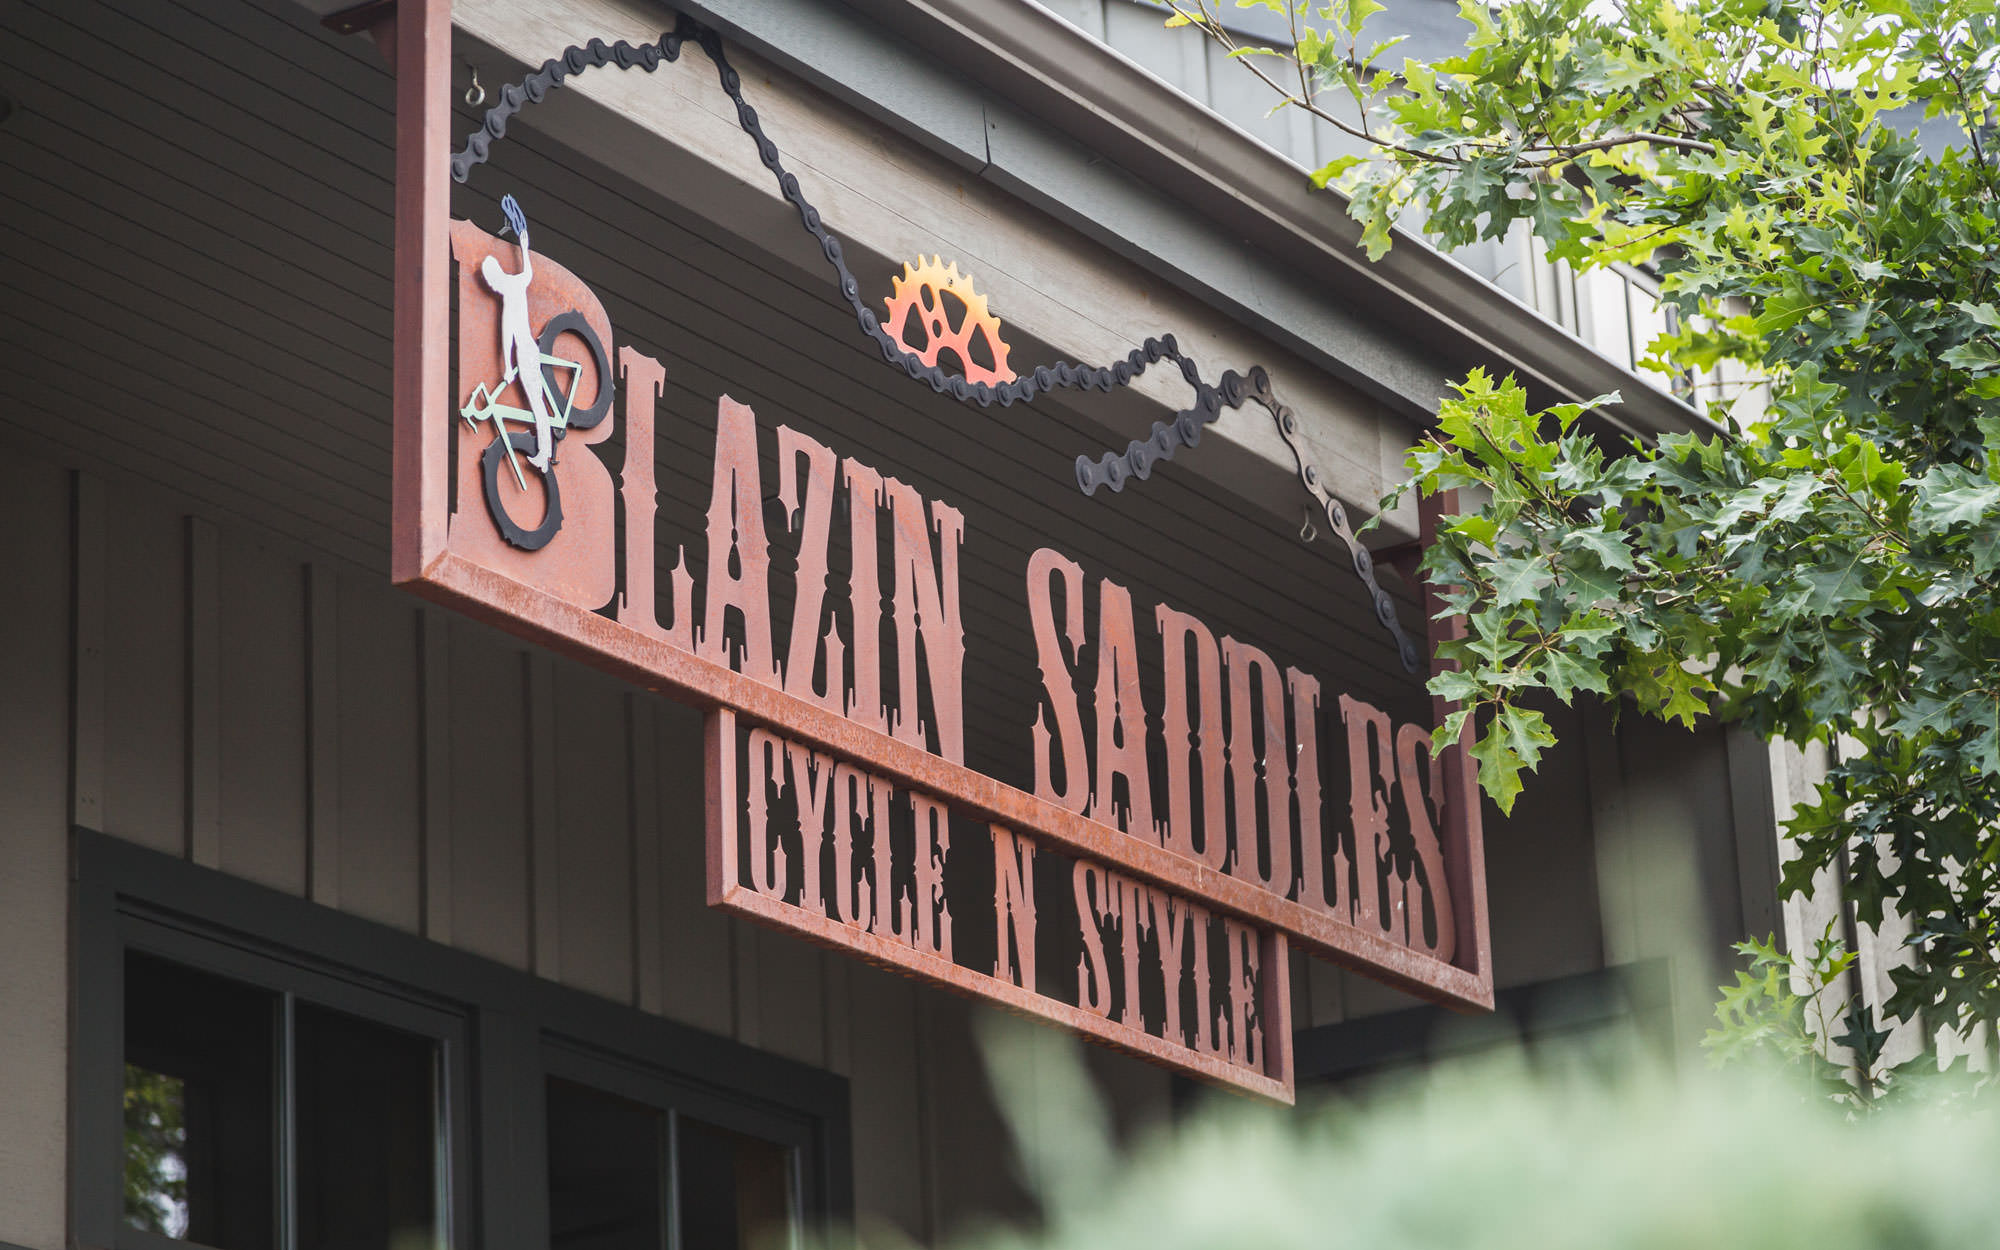 The sign of Blazin Saddles bike shop is made of bike chains and metal.